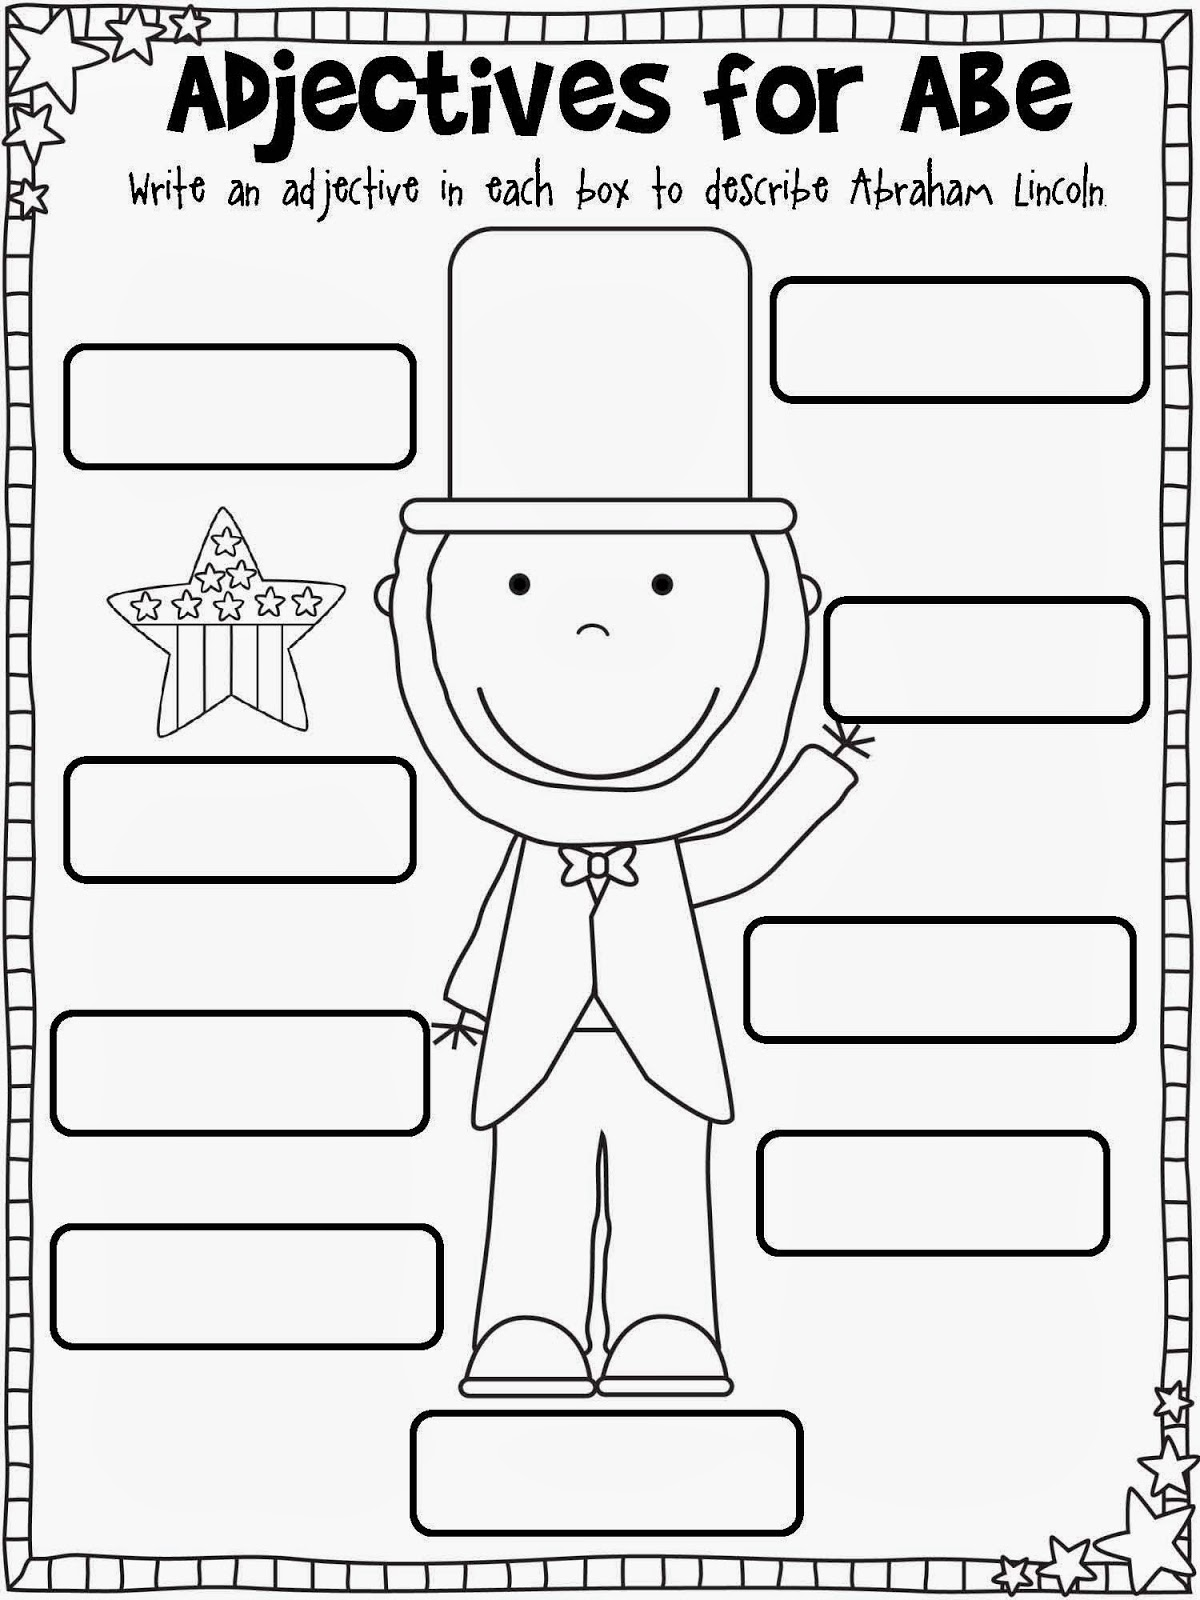 ... Grade together with 1st Grade Calendar Worksheets. on 1st grade